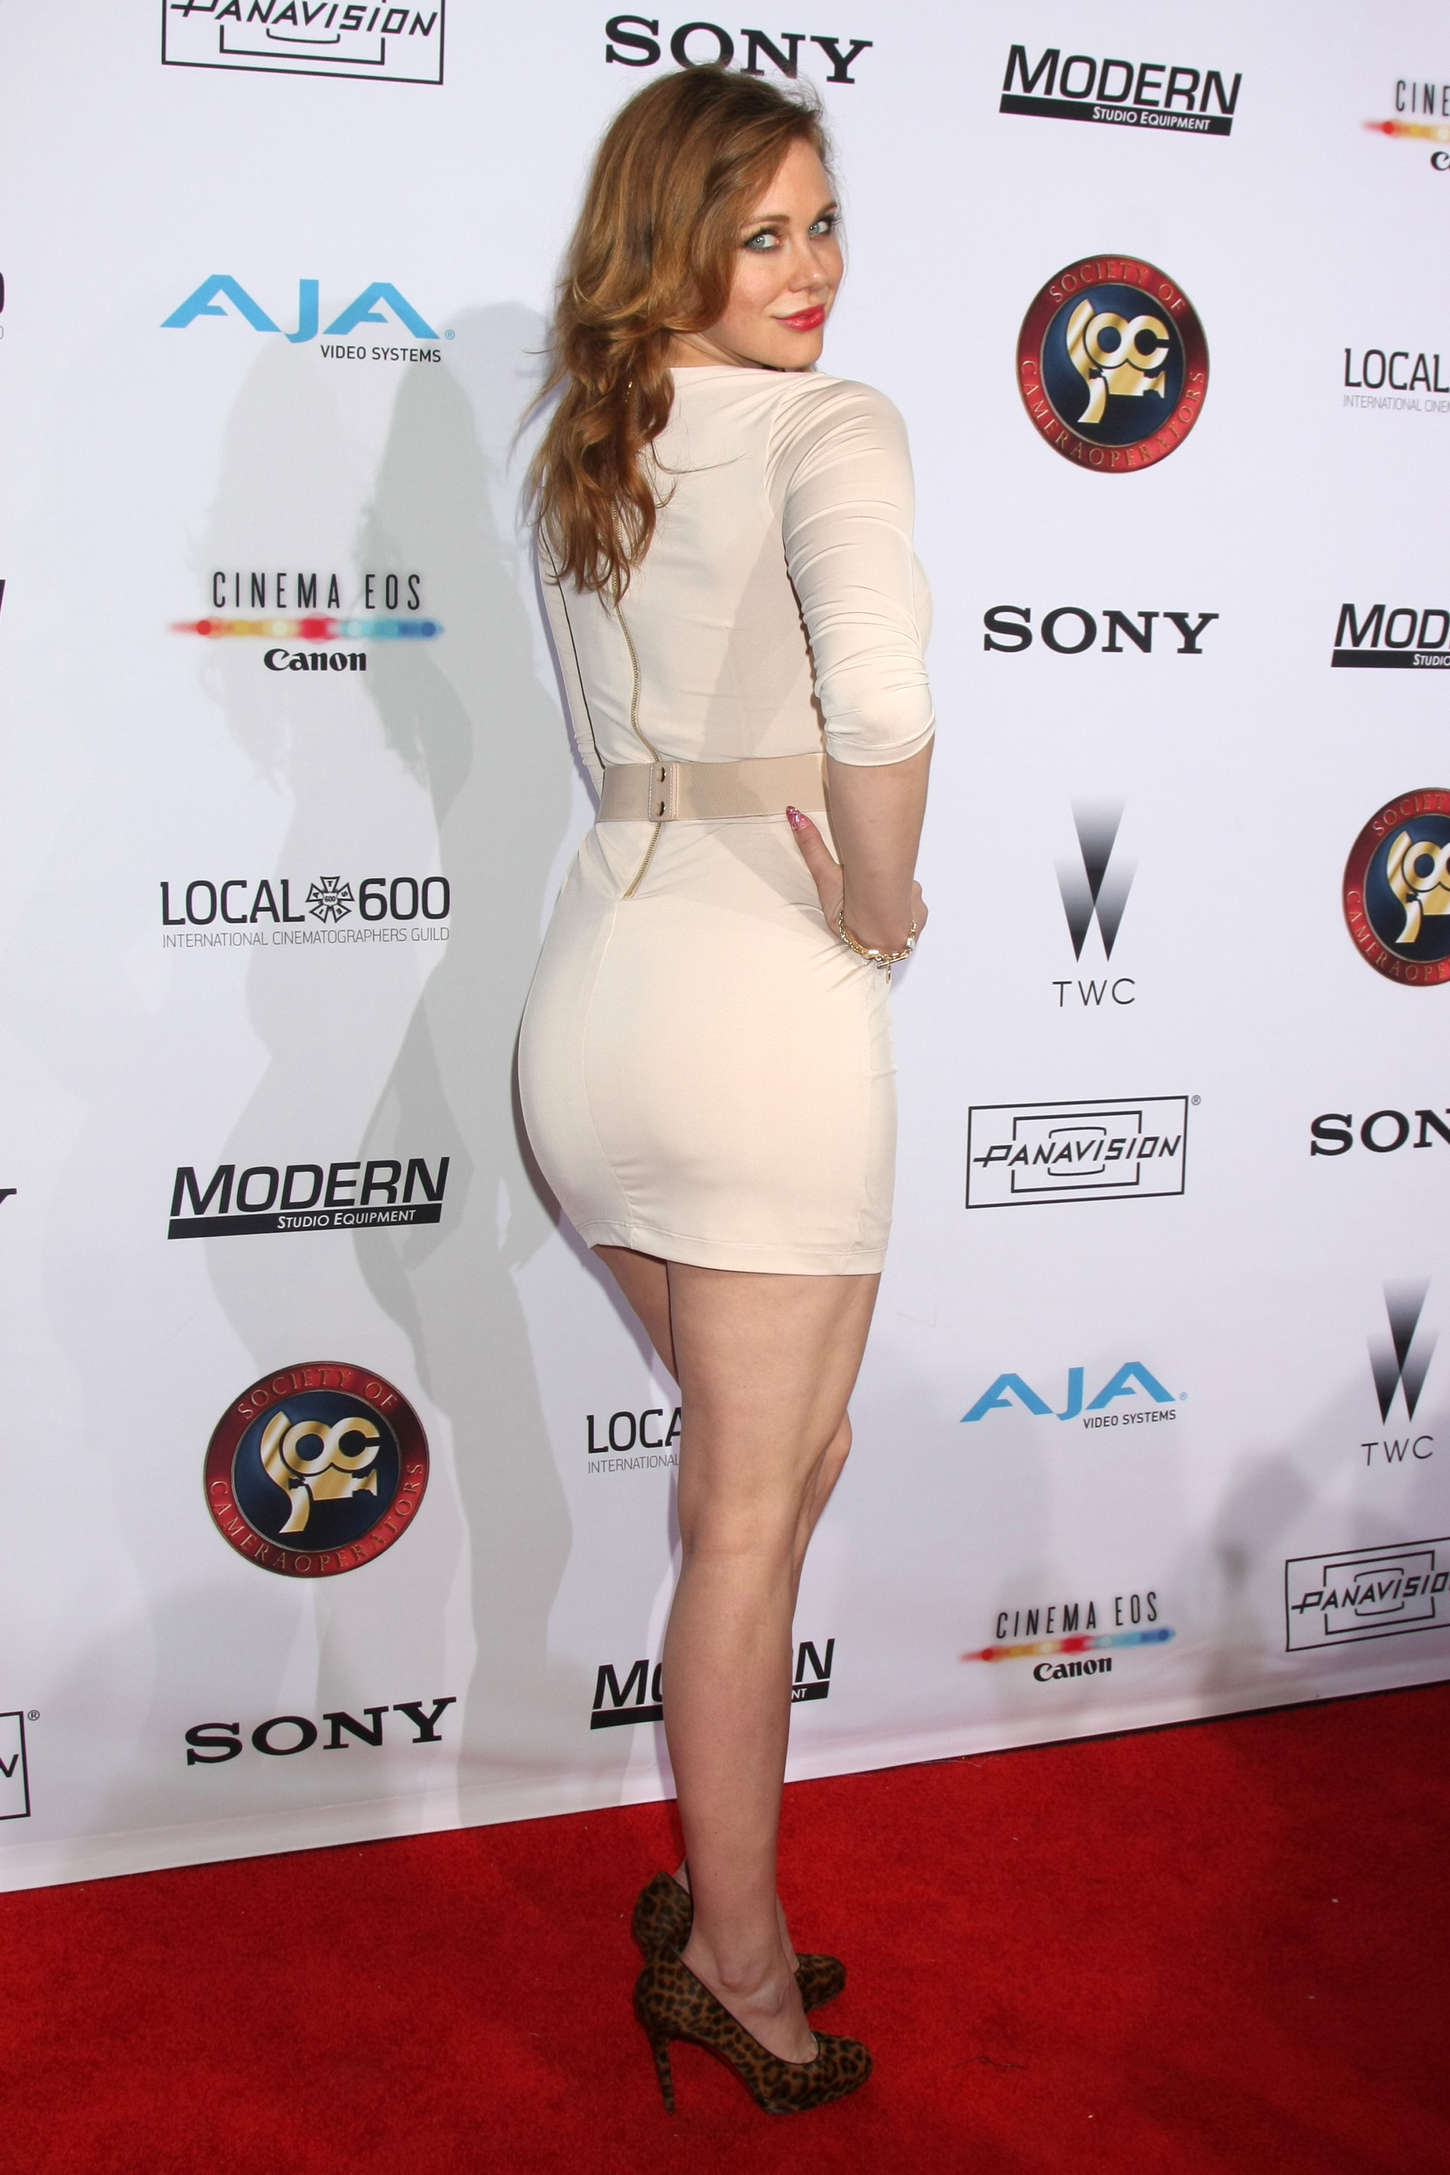 Maitland Ward - Society Of Camera Operators Lifetime Achievement Awards in Hollywood